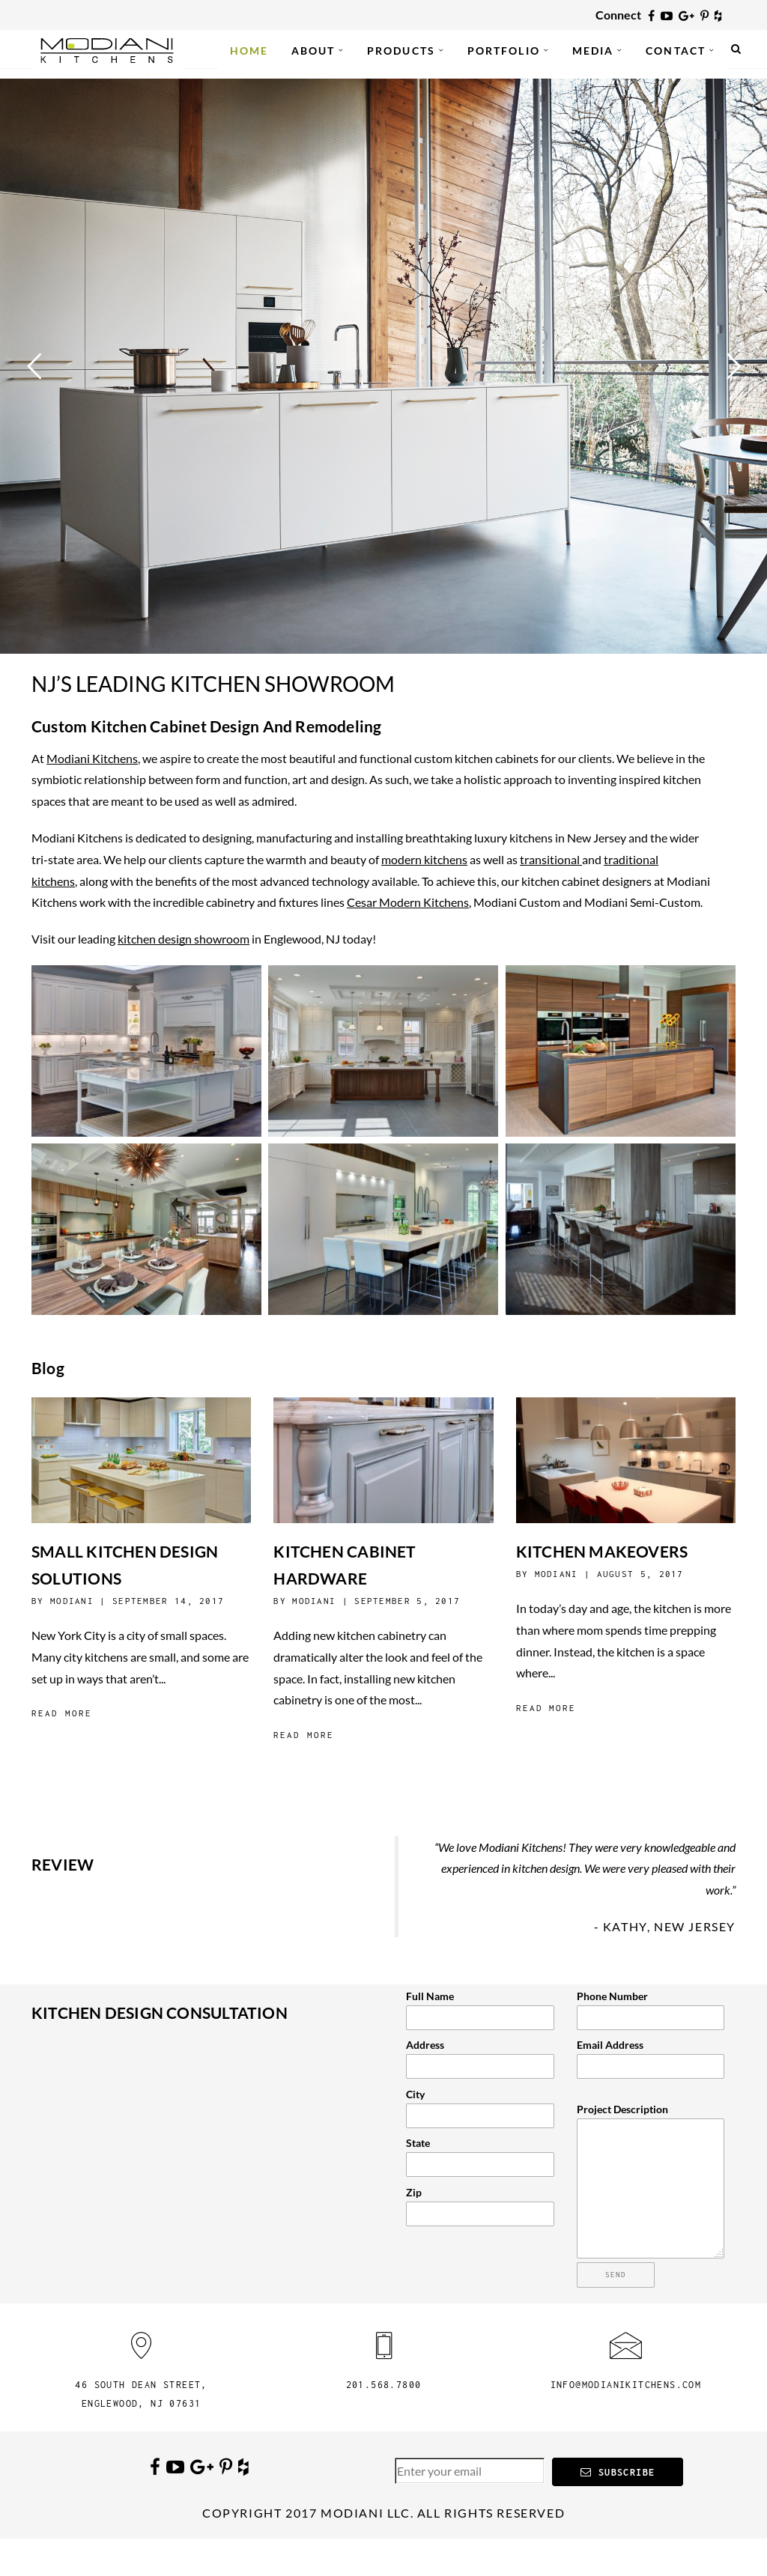 Modiani Kitchens Competitors, Revenue and Employees - Owler Company ...